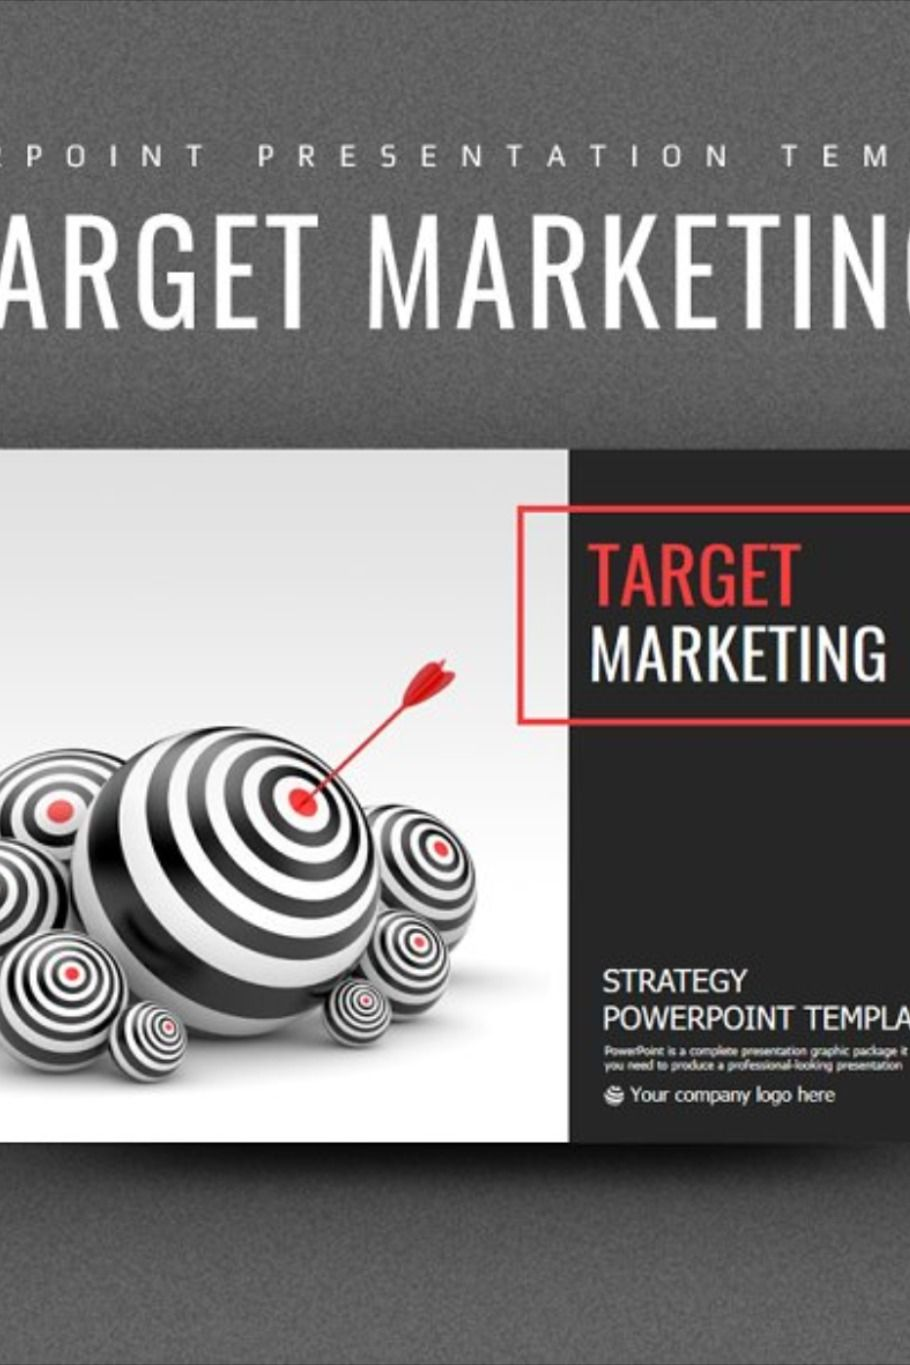 Target Marketing Strategy PPT in 2020 Marketing strategy